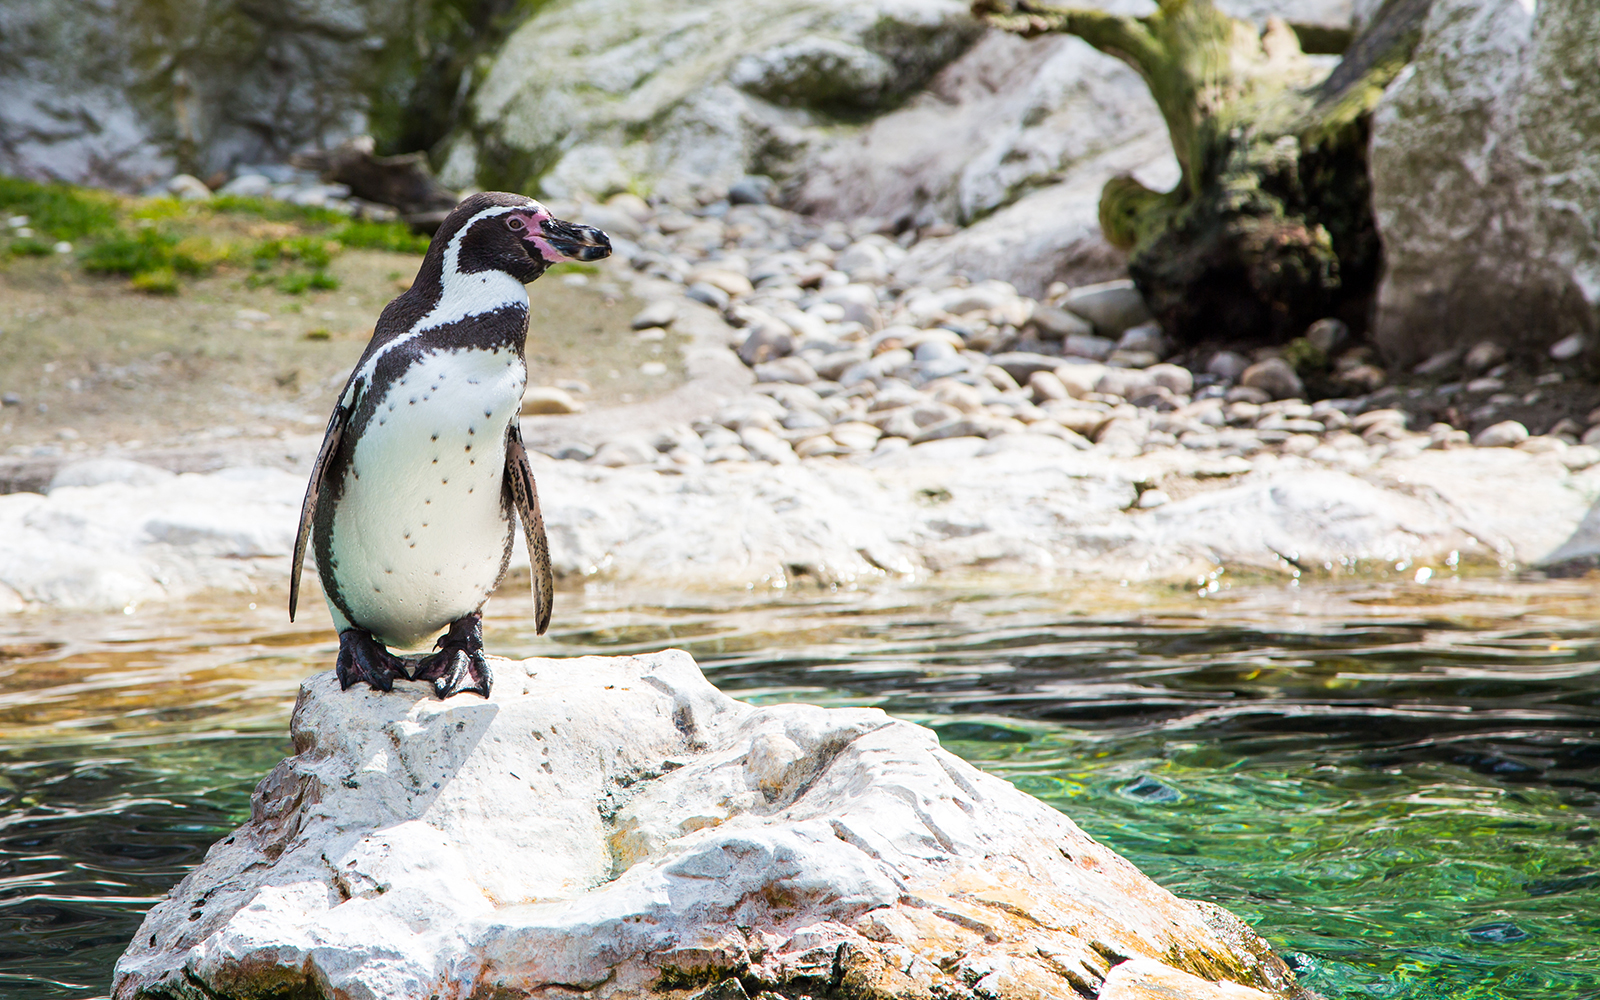 Where to See Penguins: Peru